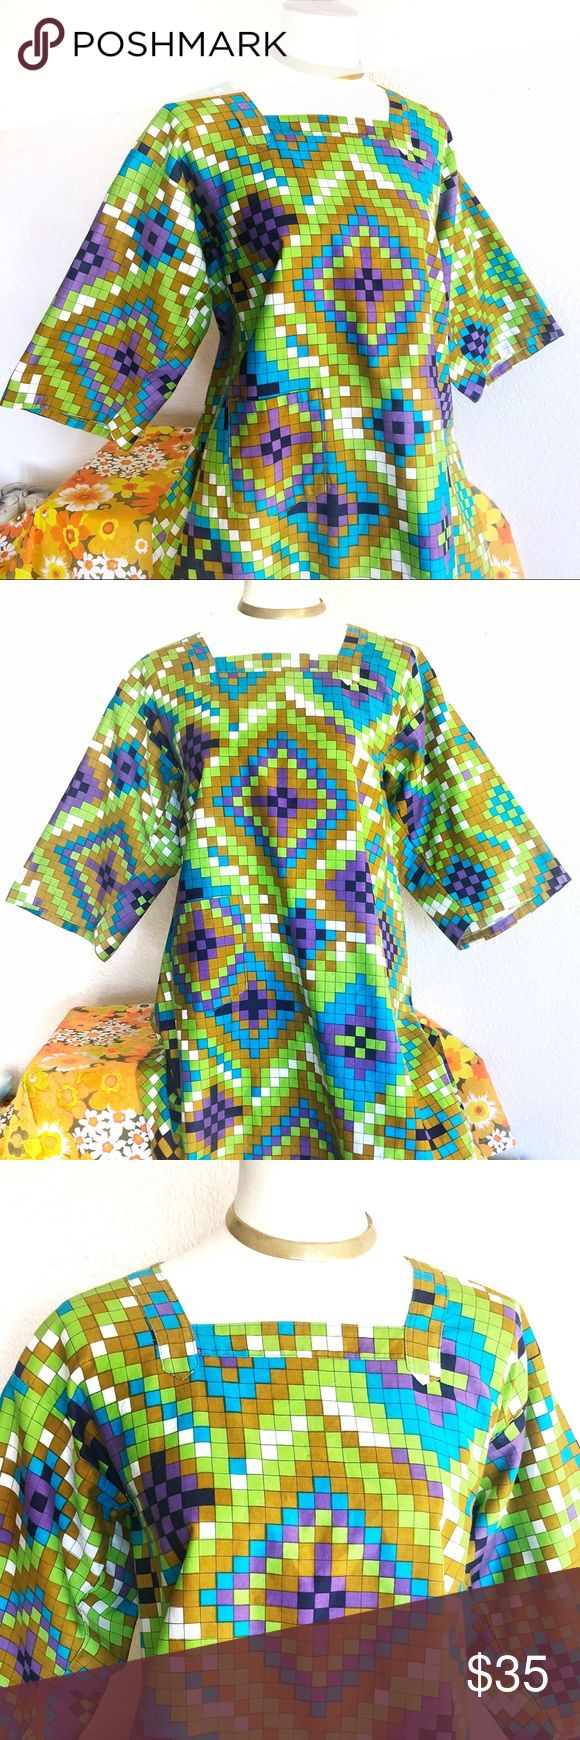 VTG🌈60s Handmade Psychedelic Smock Top! Be still. My heart. YOU GUYS. Absolute show-stopping 60's smock top. True vintage. Handmade item, in pristine, like-new condition. The fabric on this top is one of my favorites of all time - electric hues in an Aztec vibe square psychedelic pattern. Features square neckline, draped hem & ties at the back - show the perfect, subtle amount of skin 😍 Can be worn as a dress, belted, with leggings or bells. One size fits all! Deadstock condition. Vintage…